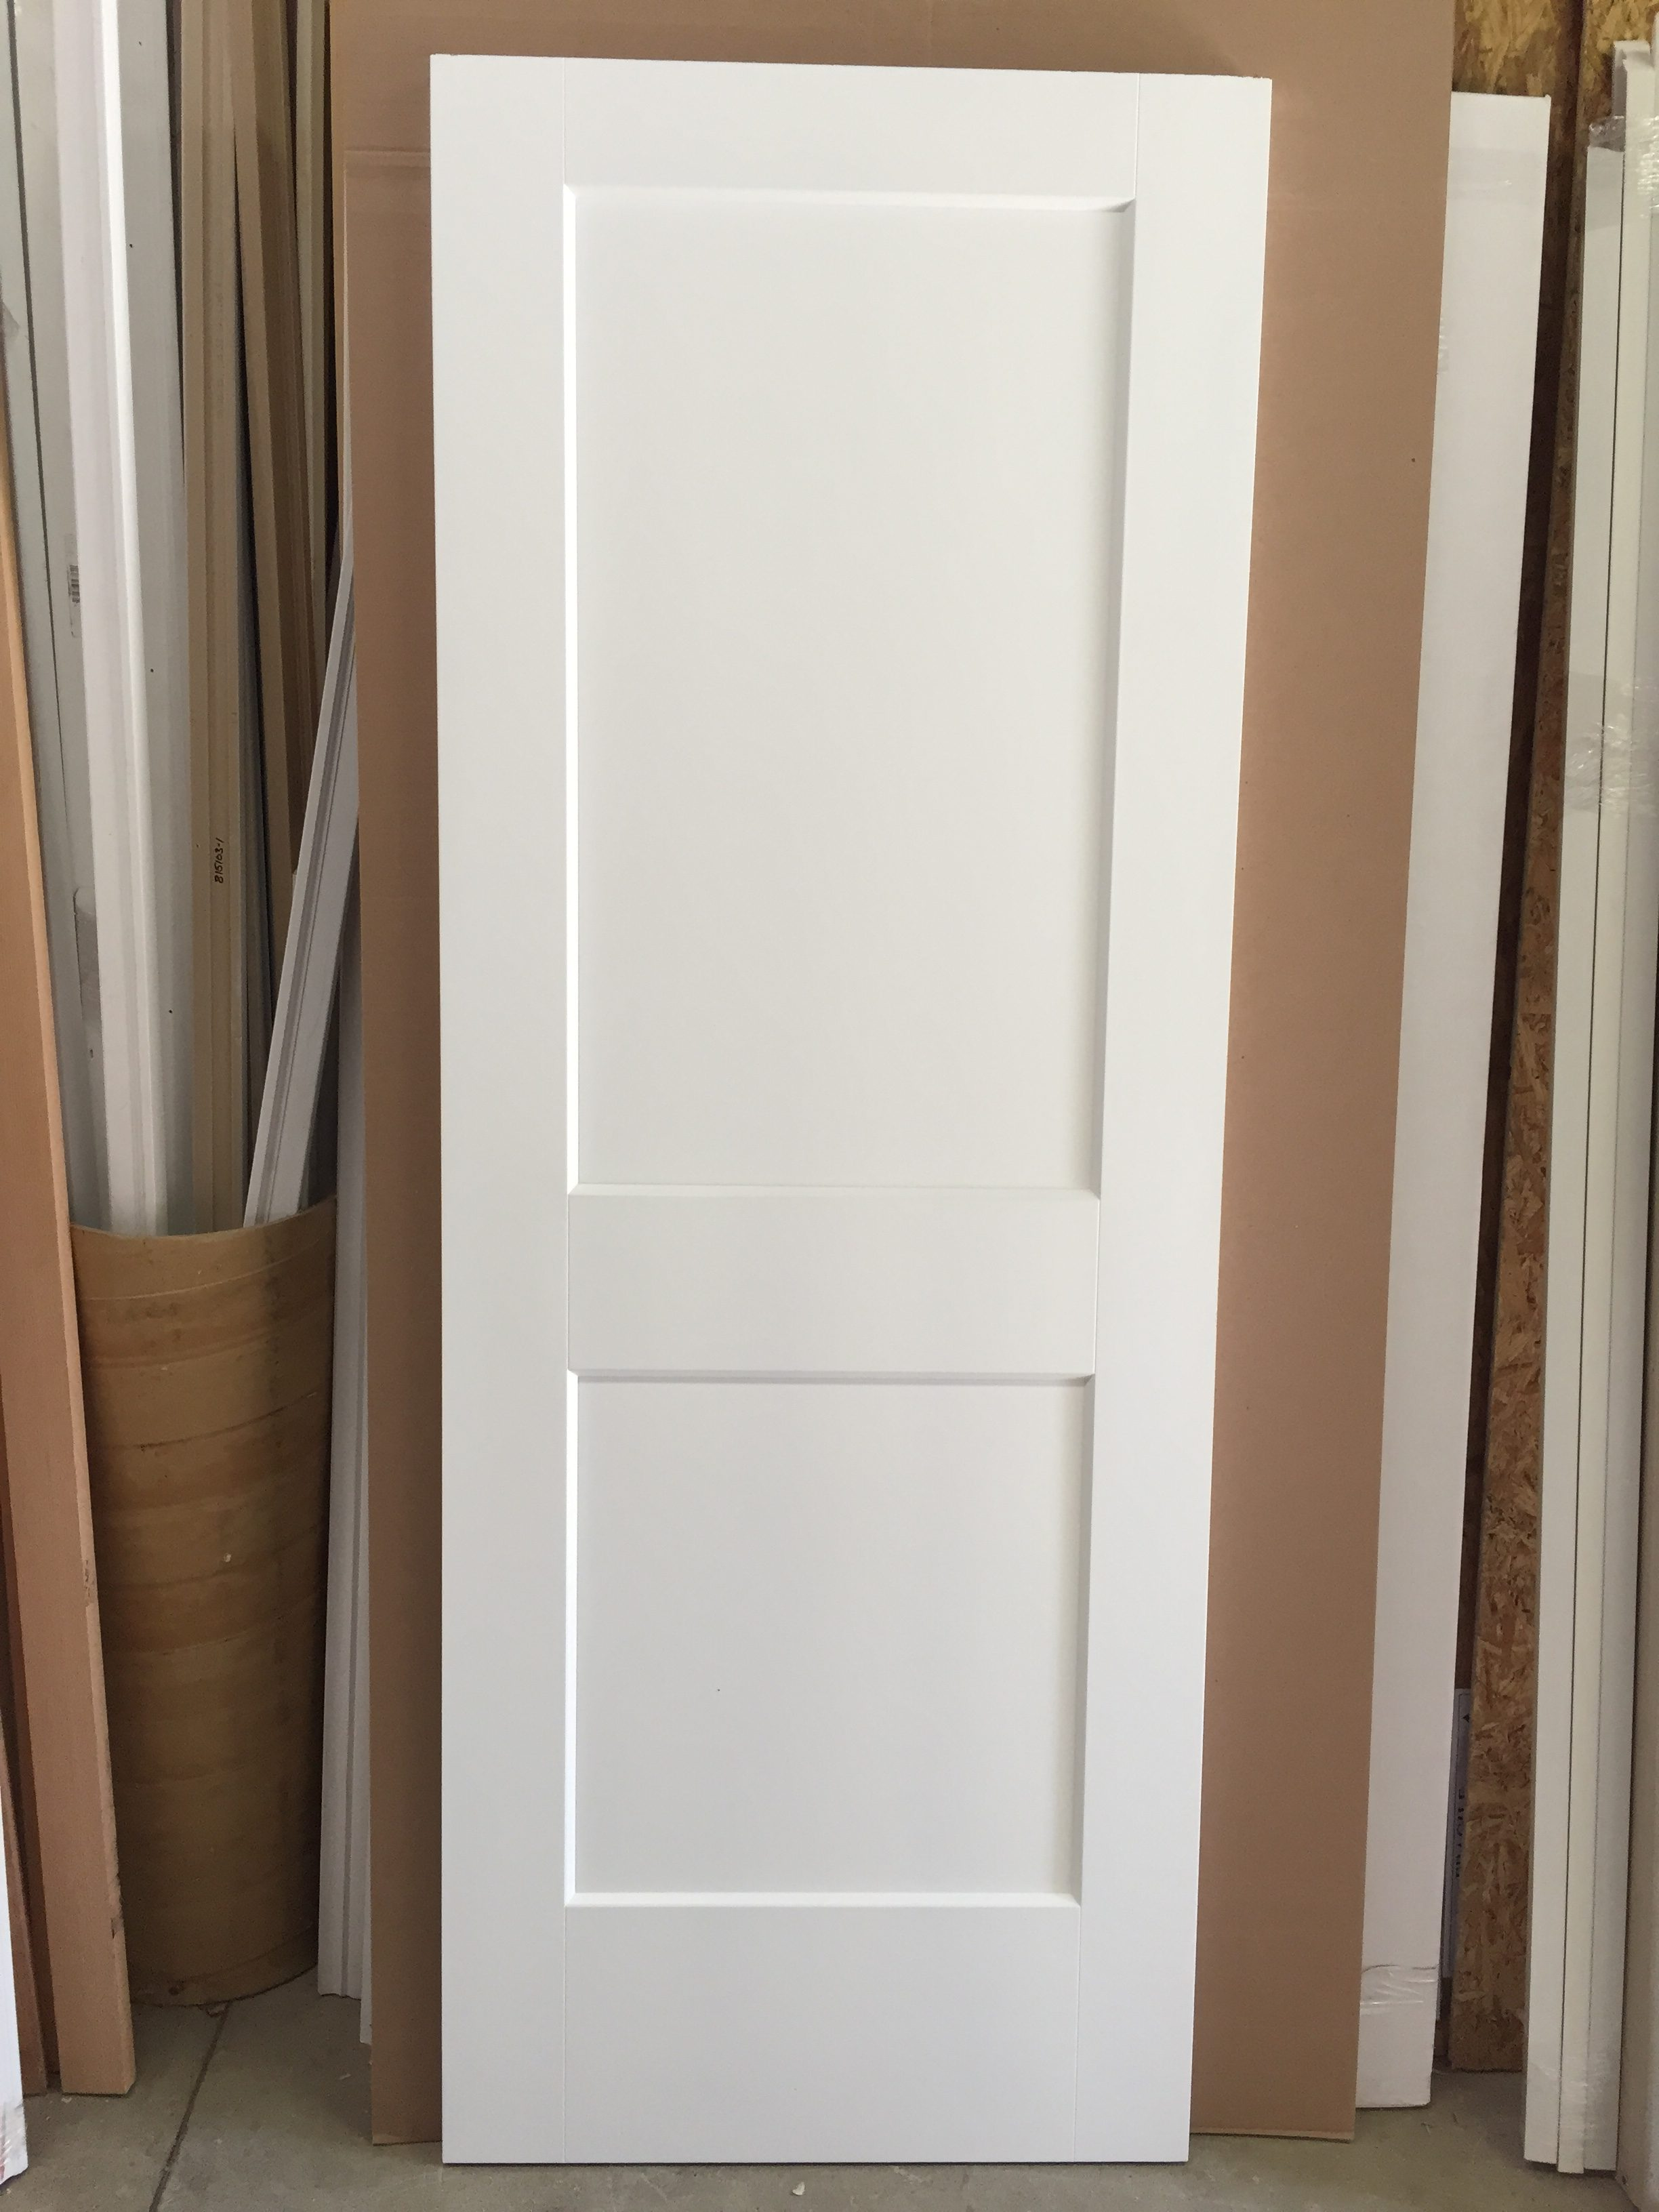 of fresh doors howden amp oak shaker price interior glazed internal panel dordogne howdens u door elegant moulded prices